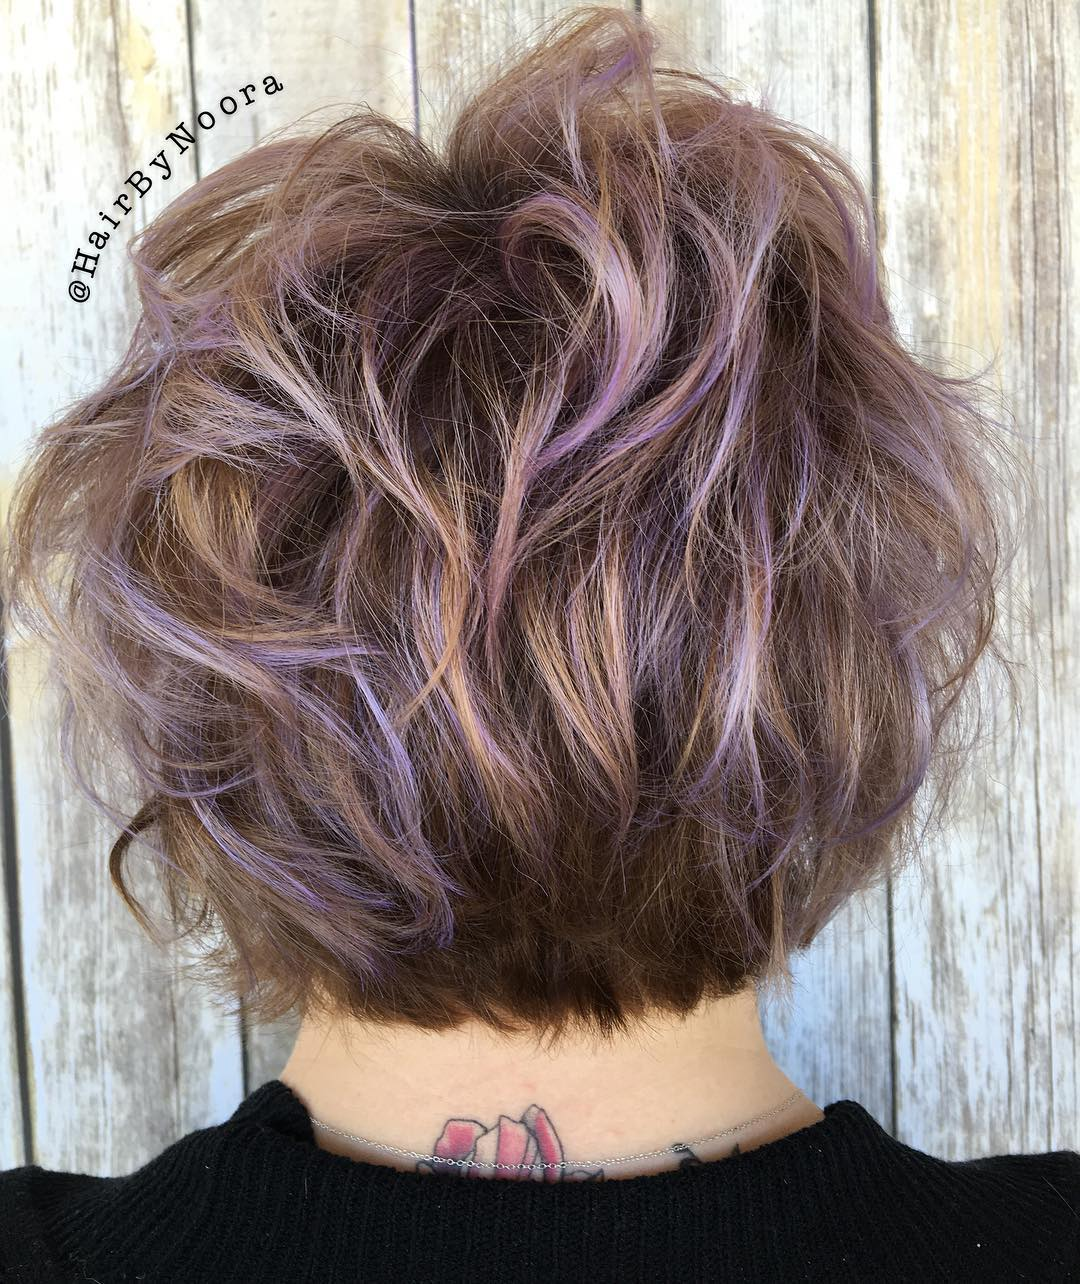 40 Light Brown Hair Color Ideas: Light Brown Hair With